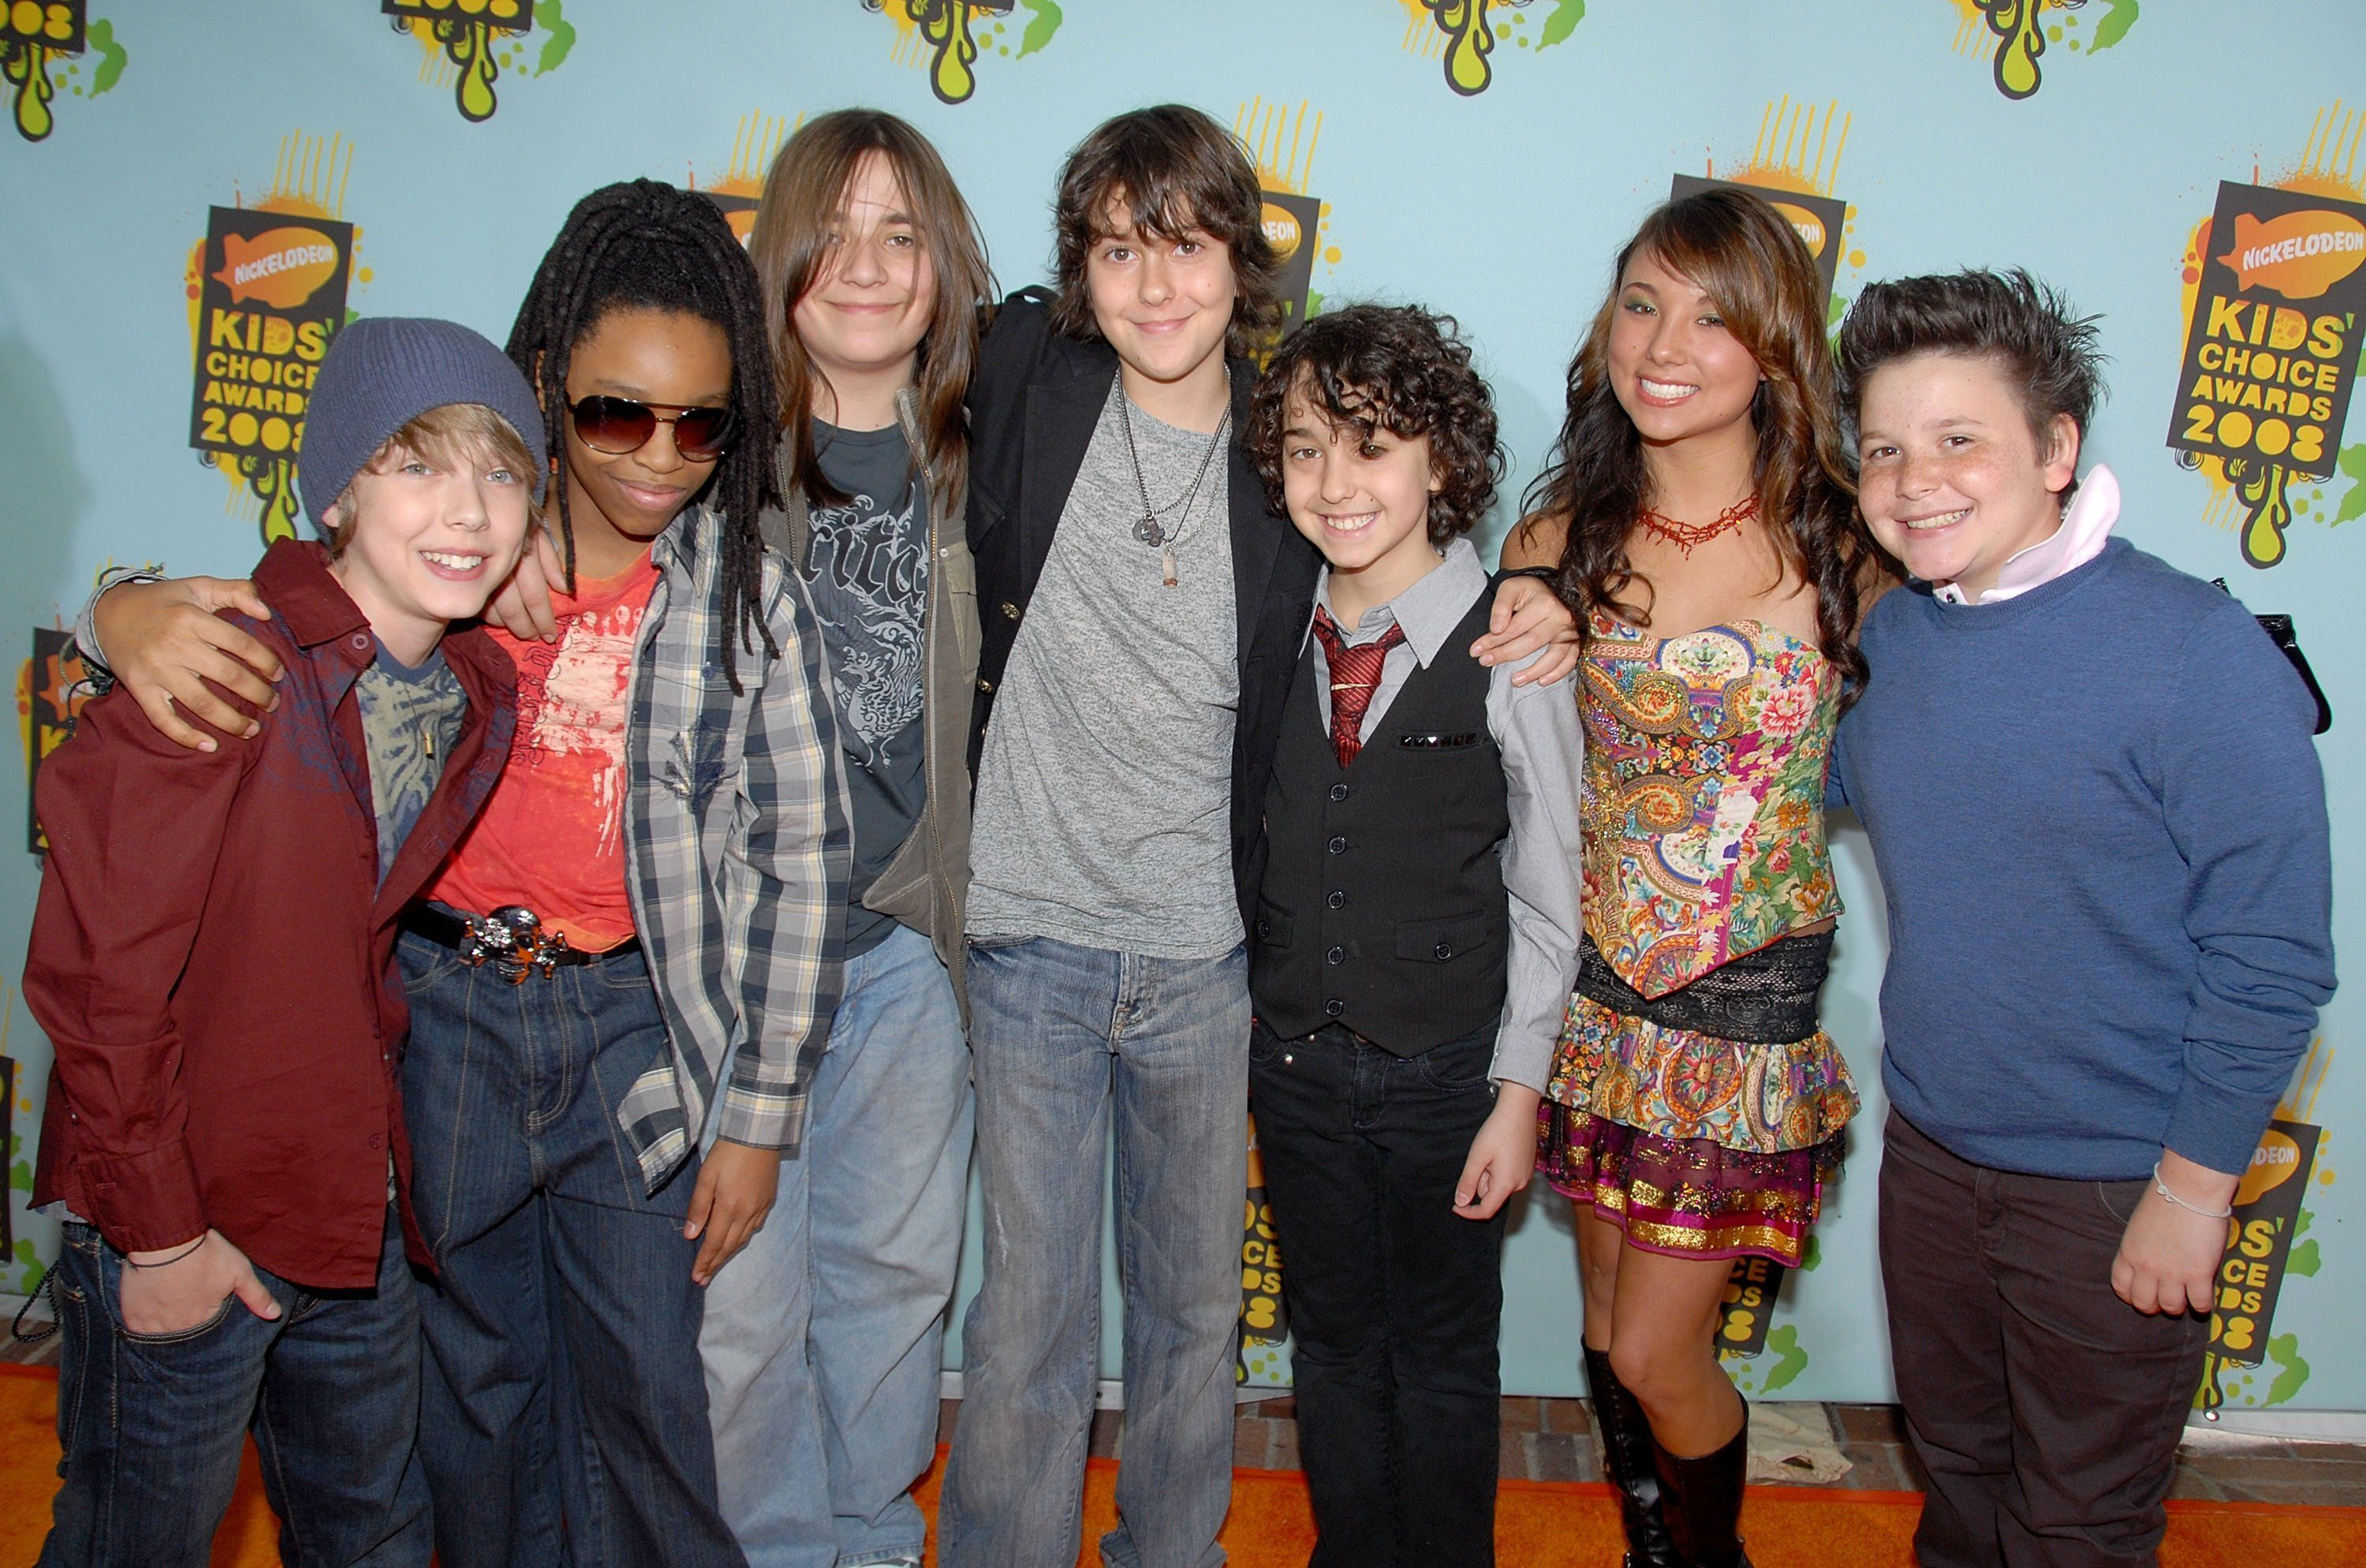 Tinker reccomend Naked brothers band now